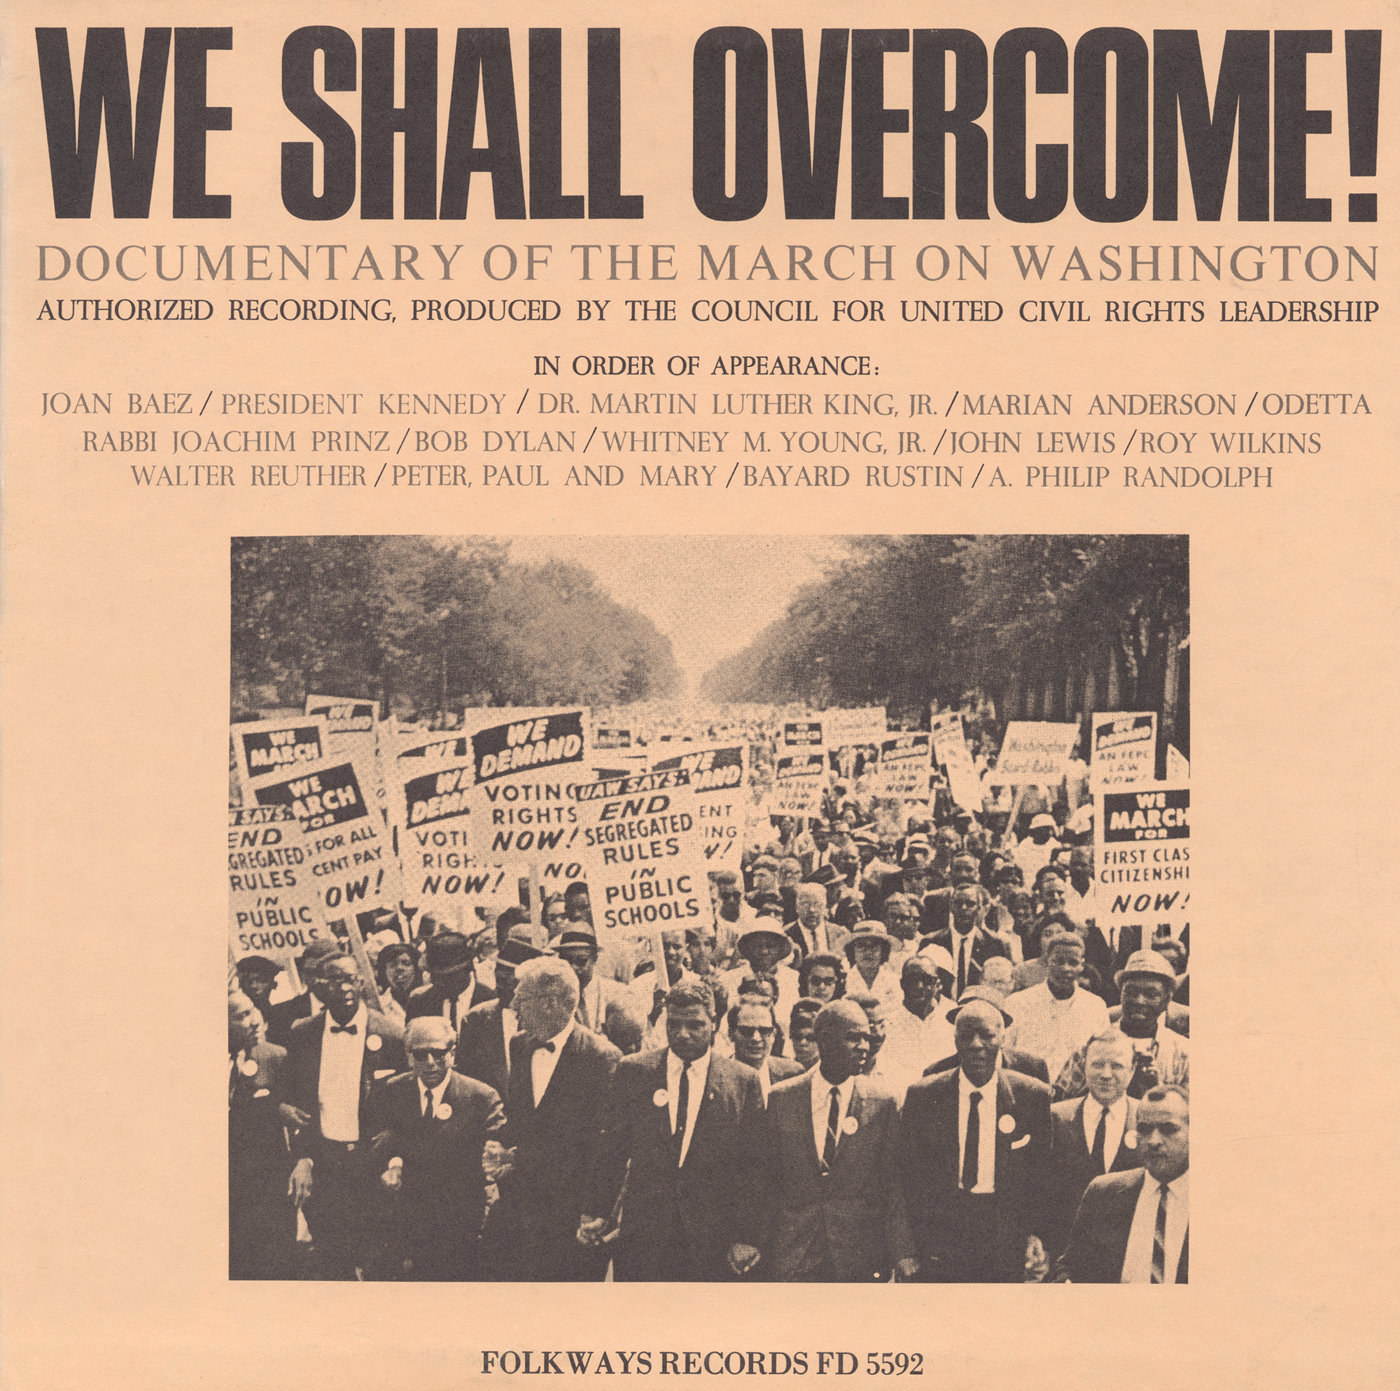 We Shall Overcome Documentary Of The March On Washington